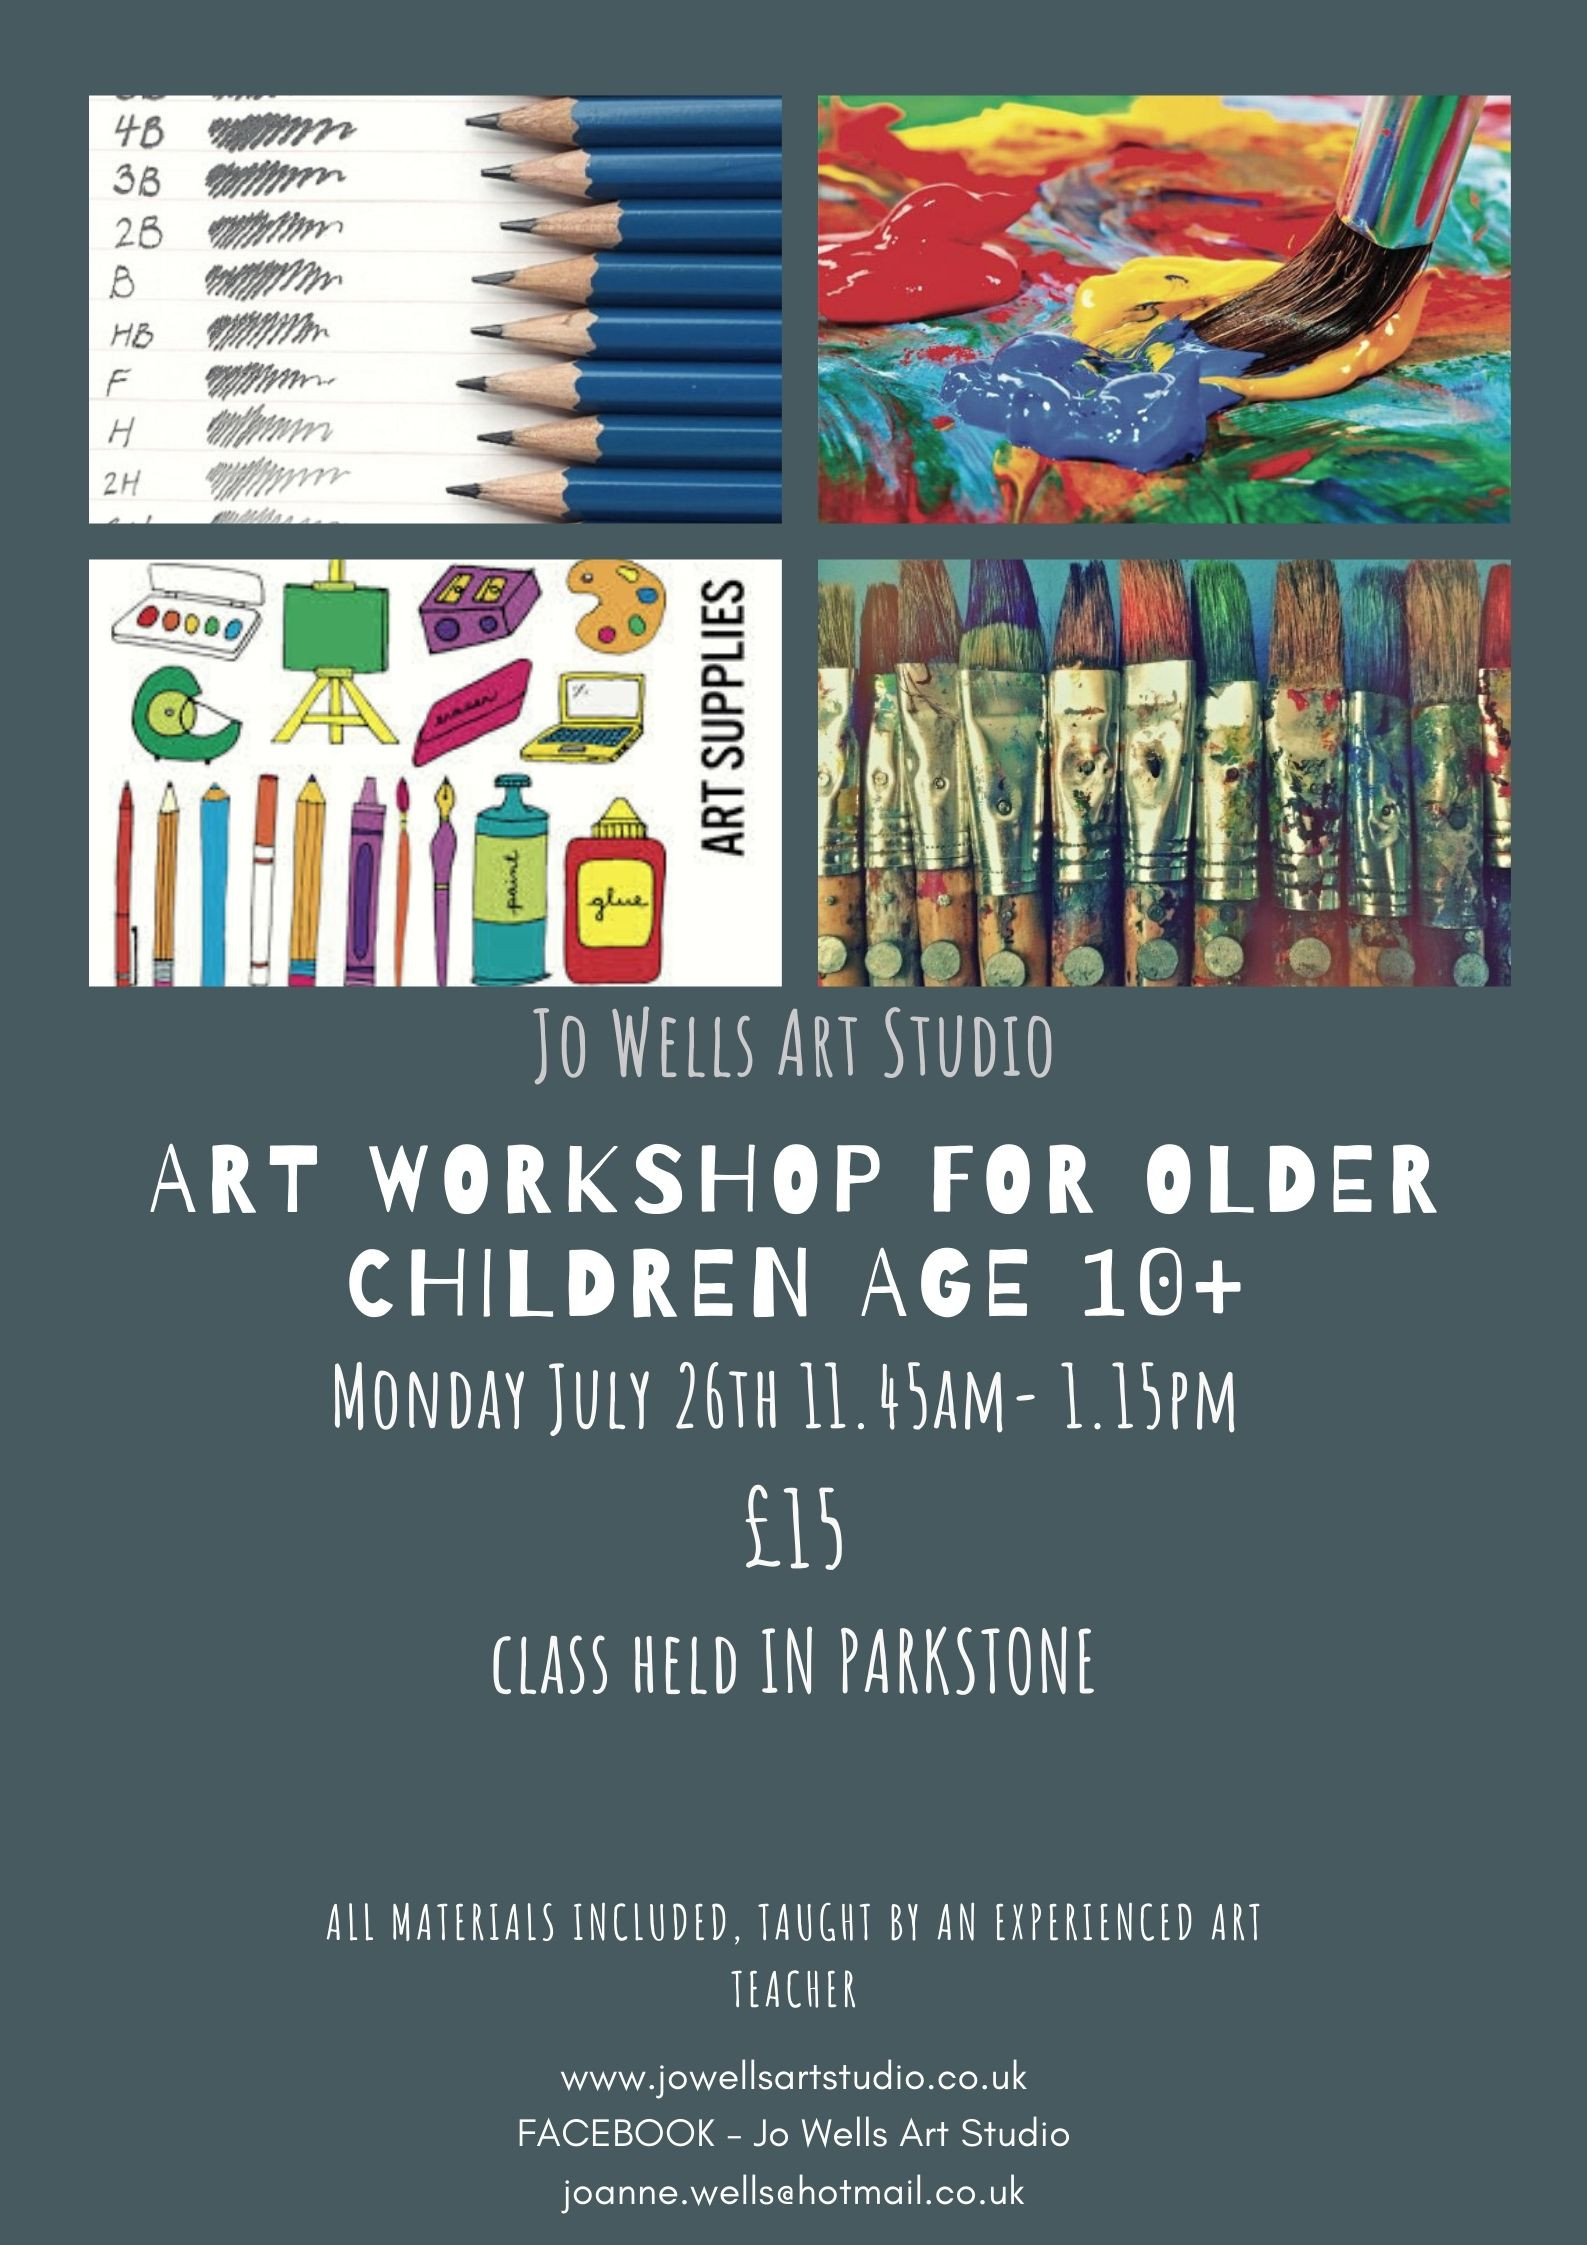 Holiday art session for children age 10+